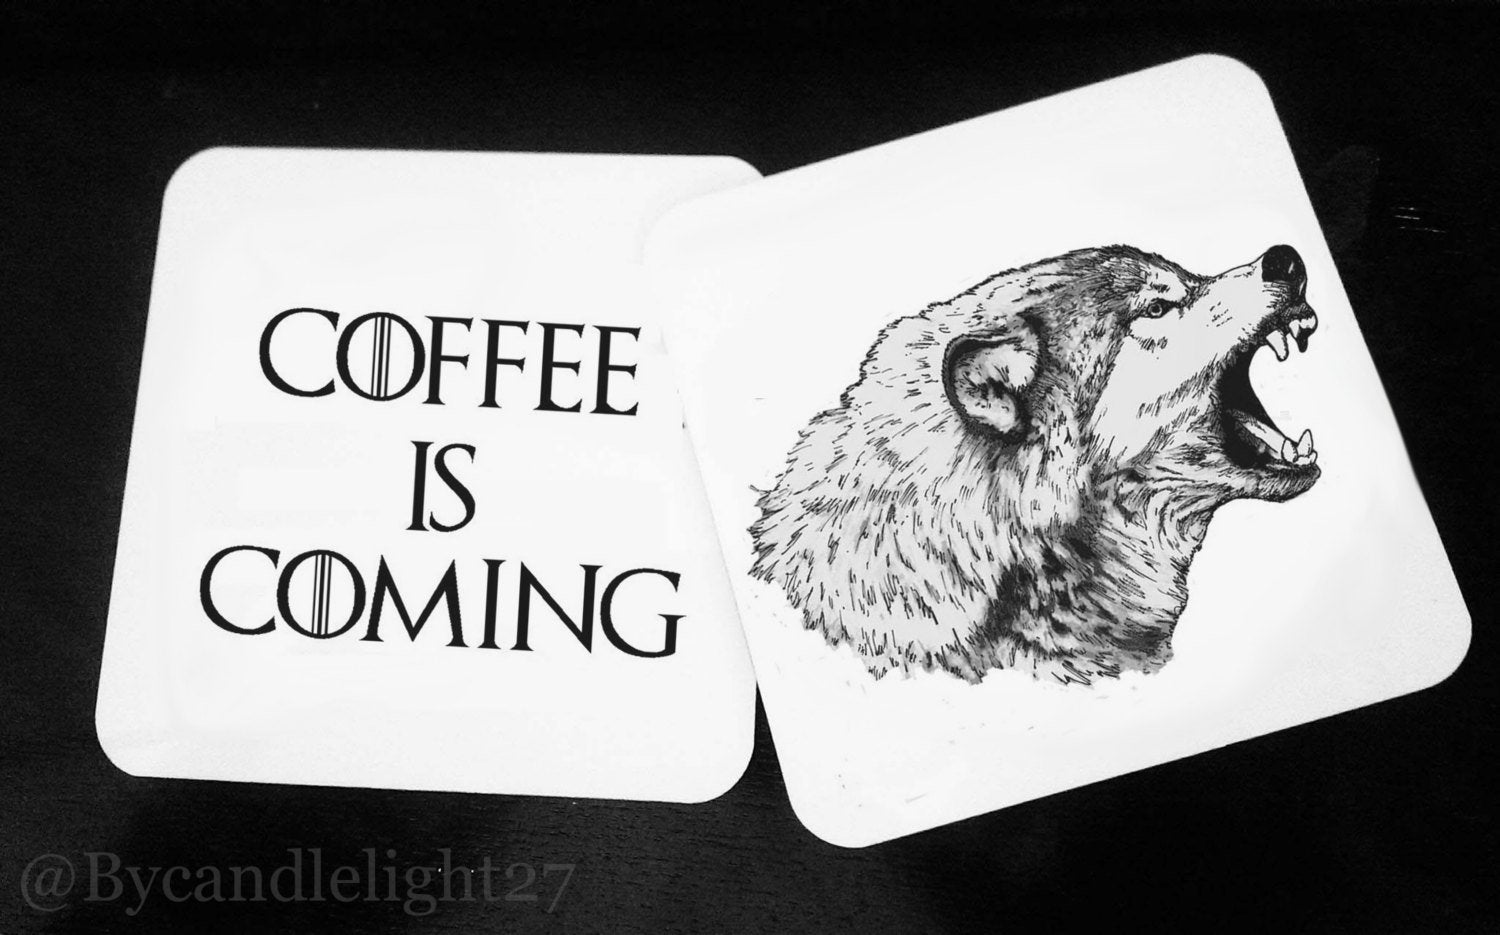 Coffee Is Coming - House of Stark -  Game Of Thrones - Hardwood Coasters - ByCandlelight27